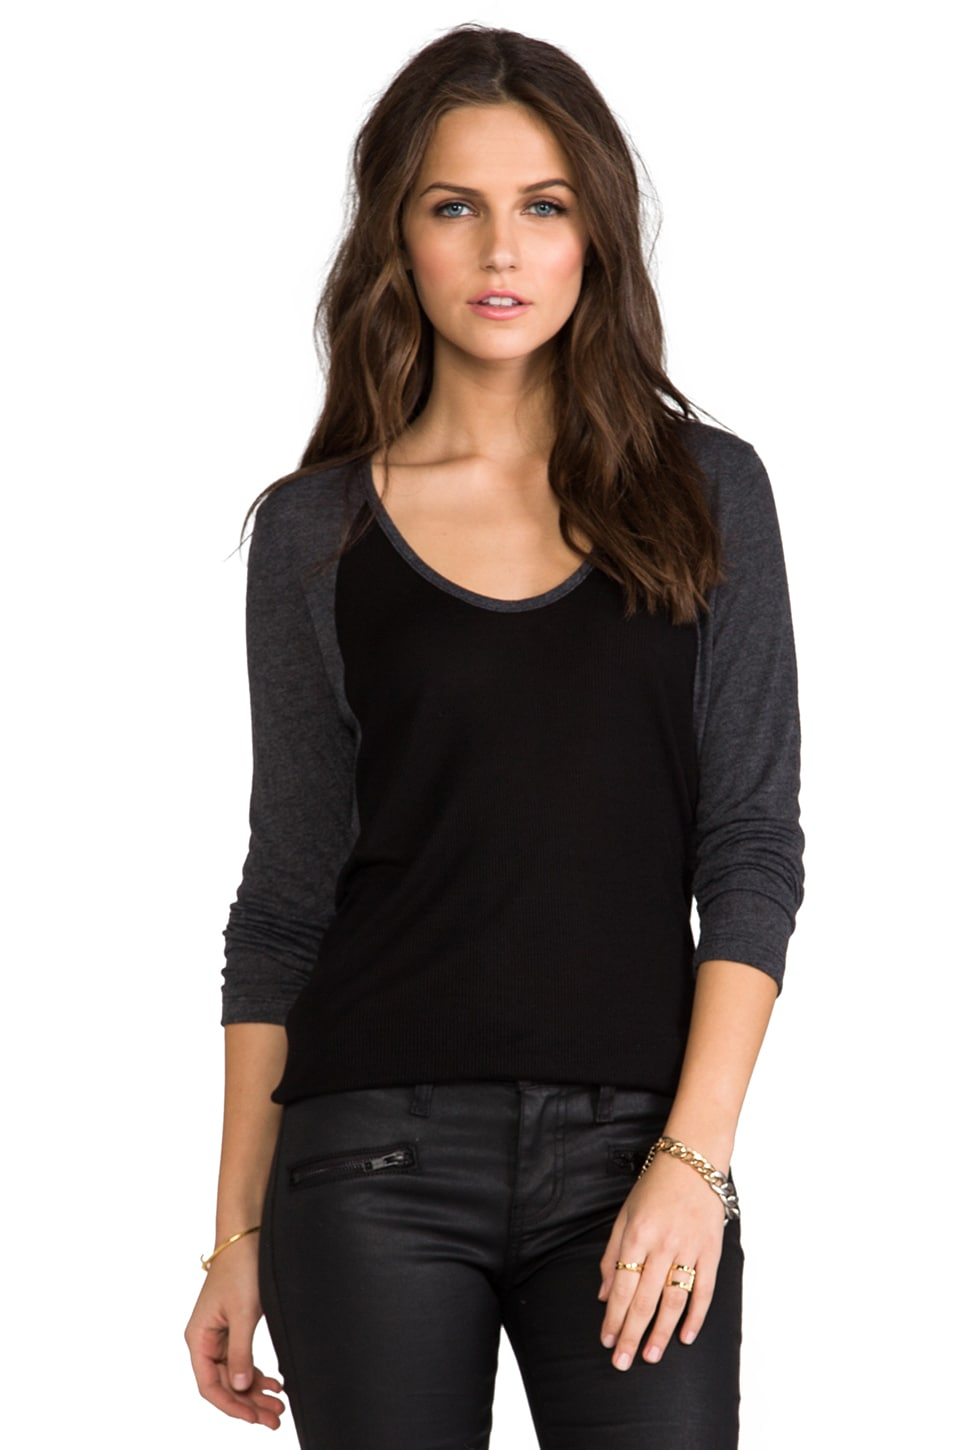 Saint Grace Alexi Contrast Raglan in Black